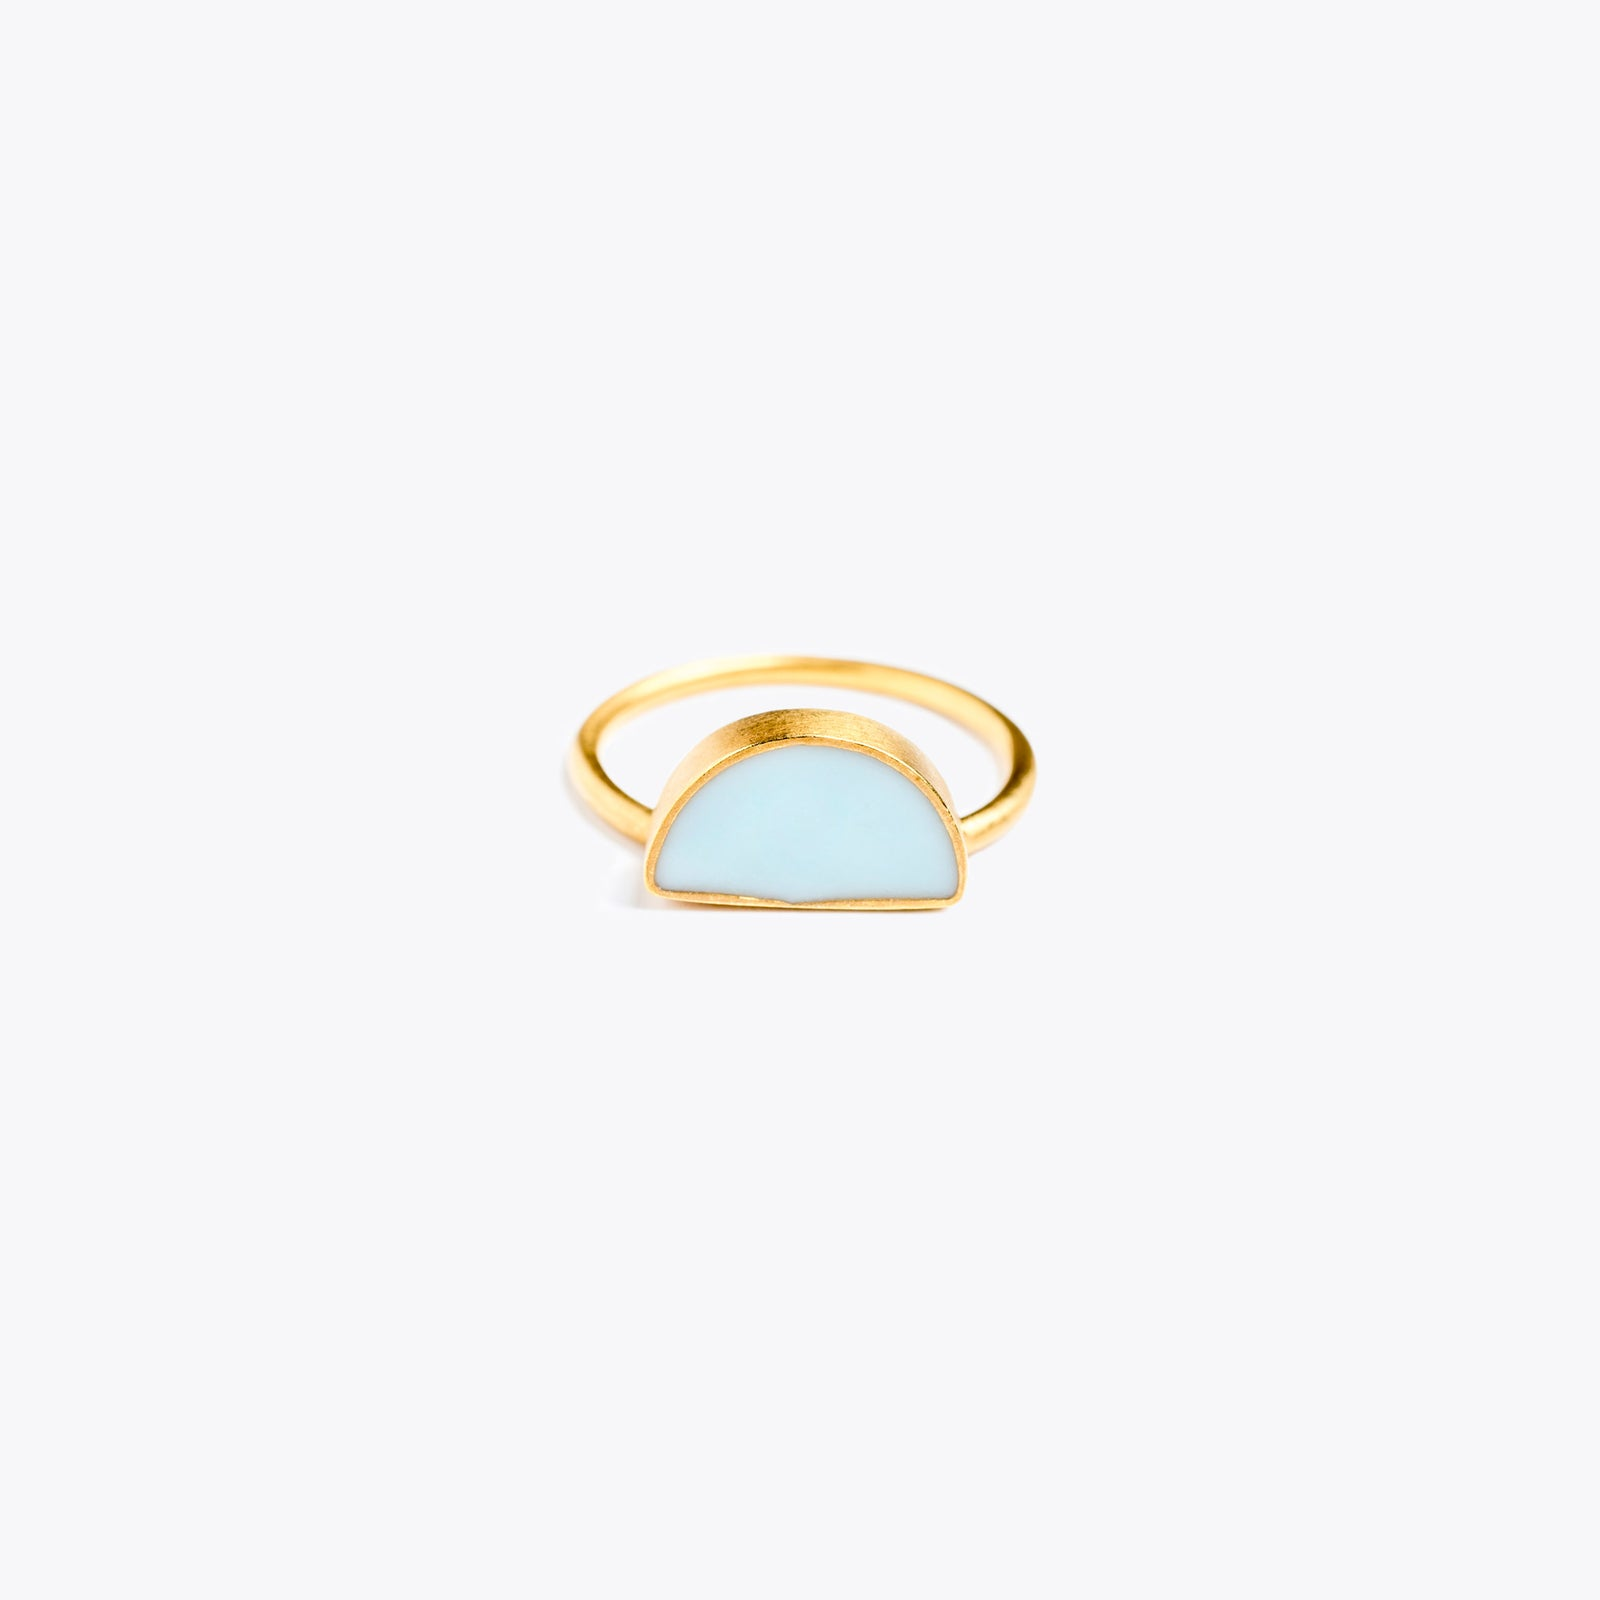 Wanderlust Life Ethically Handmade jewellery made in the UK. Minimalist gold and fine cord jewellery. sunburst enamel ring, mint